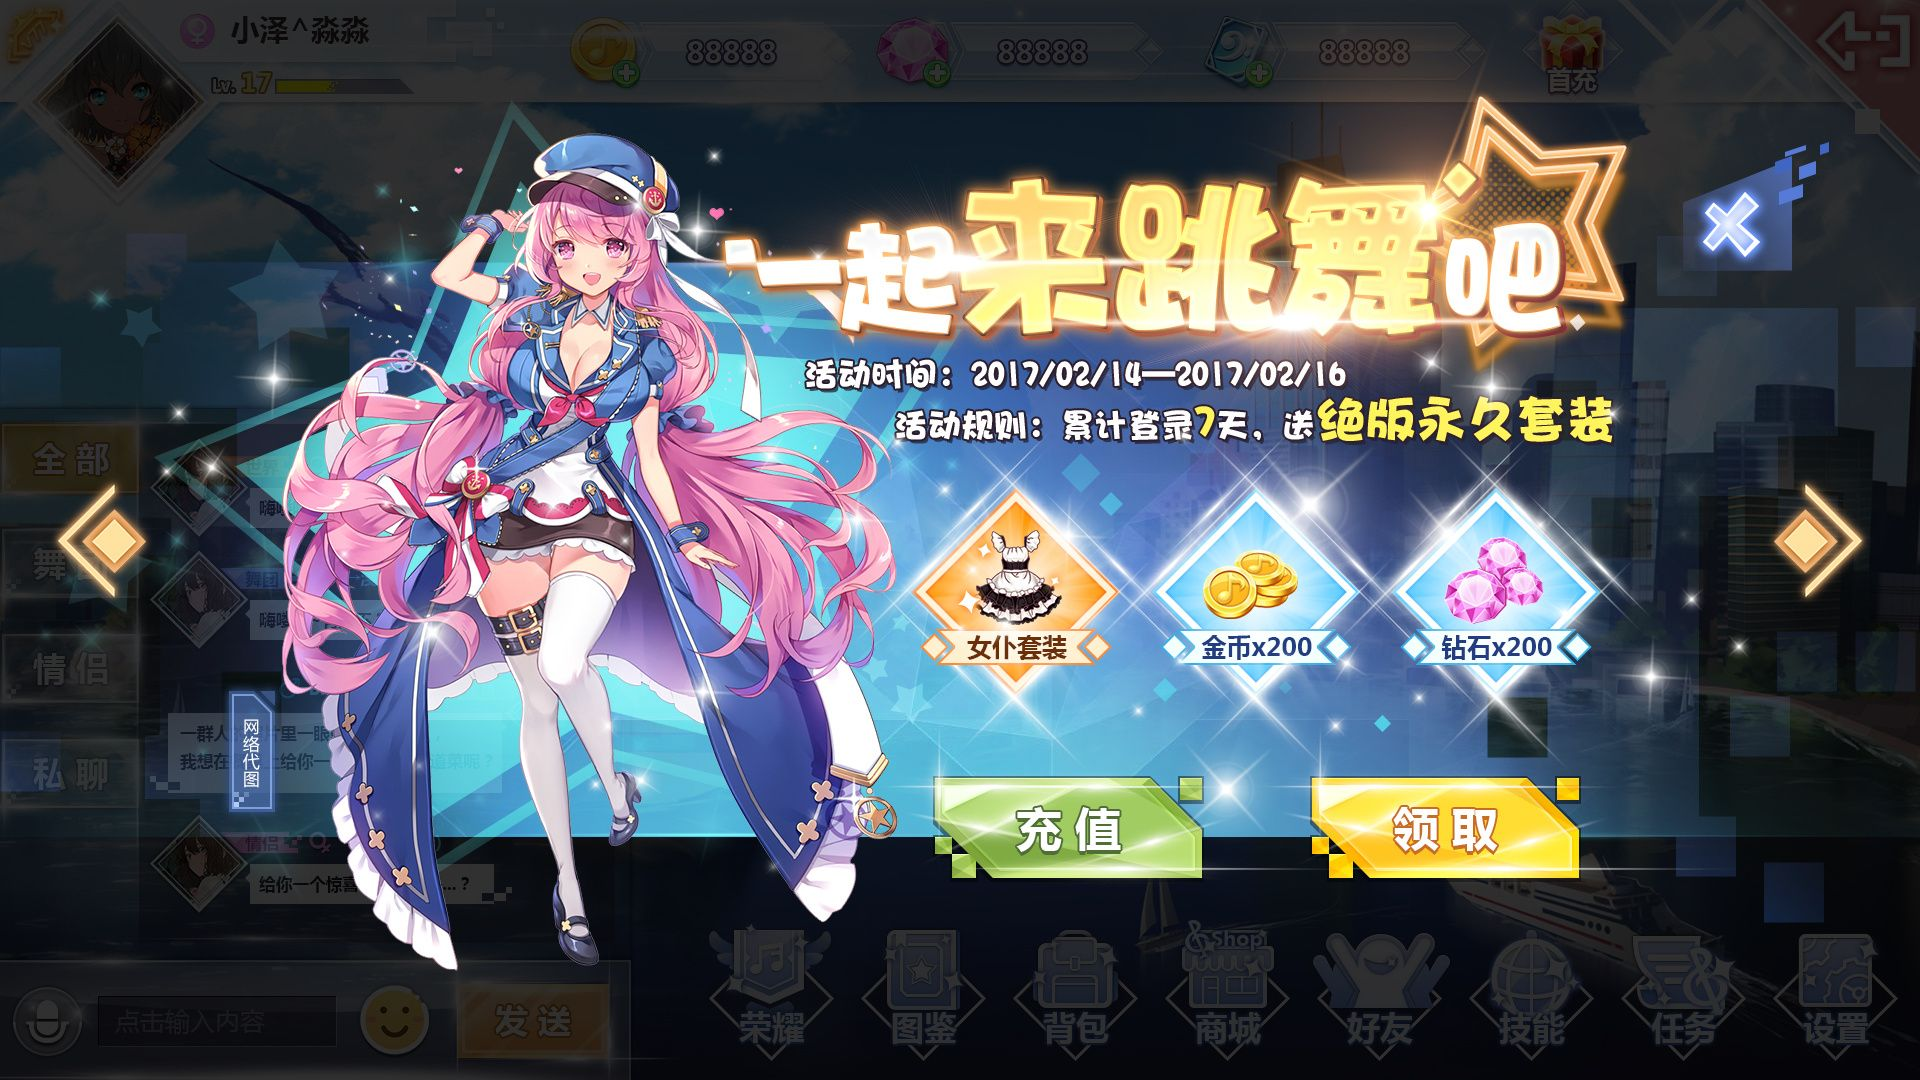 banner 活动界面 (With images)